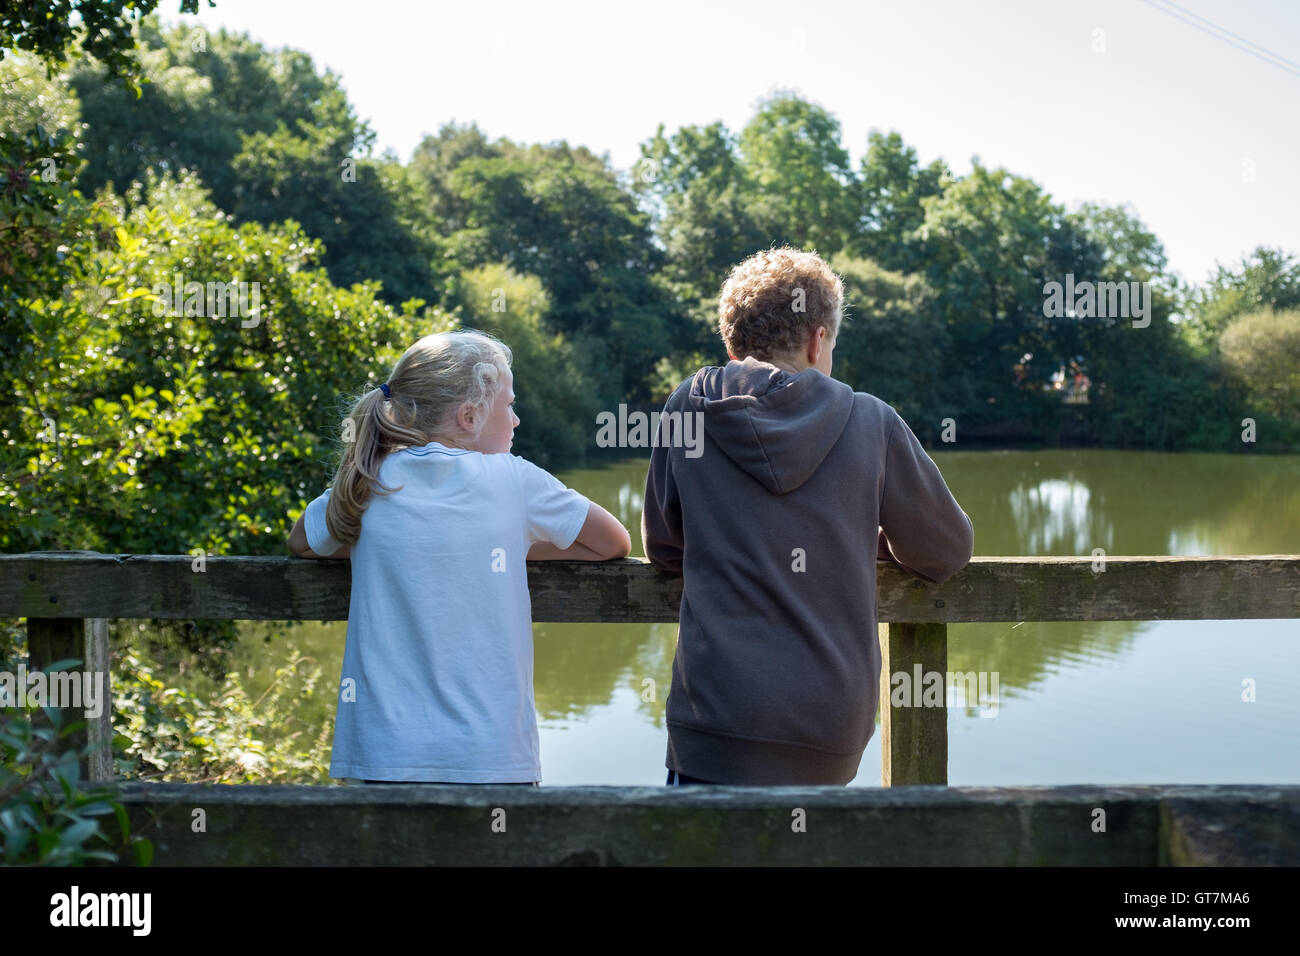 Boy and girl, brother and sister looking out over a lake in the UK countryside - Stock Image